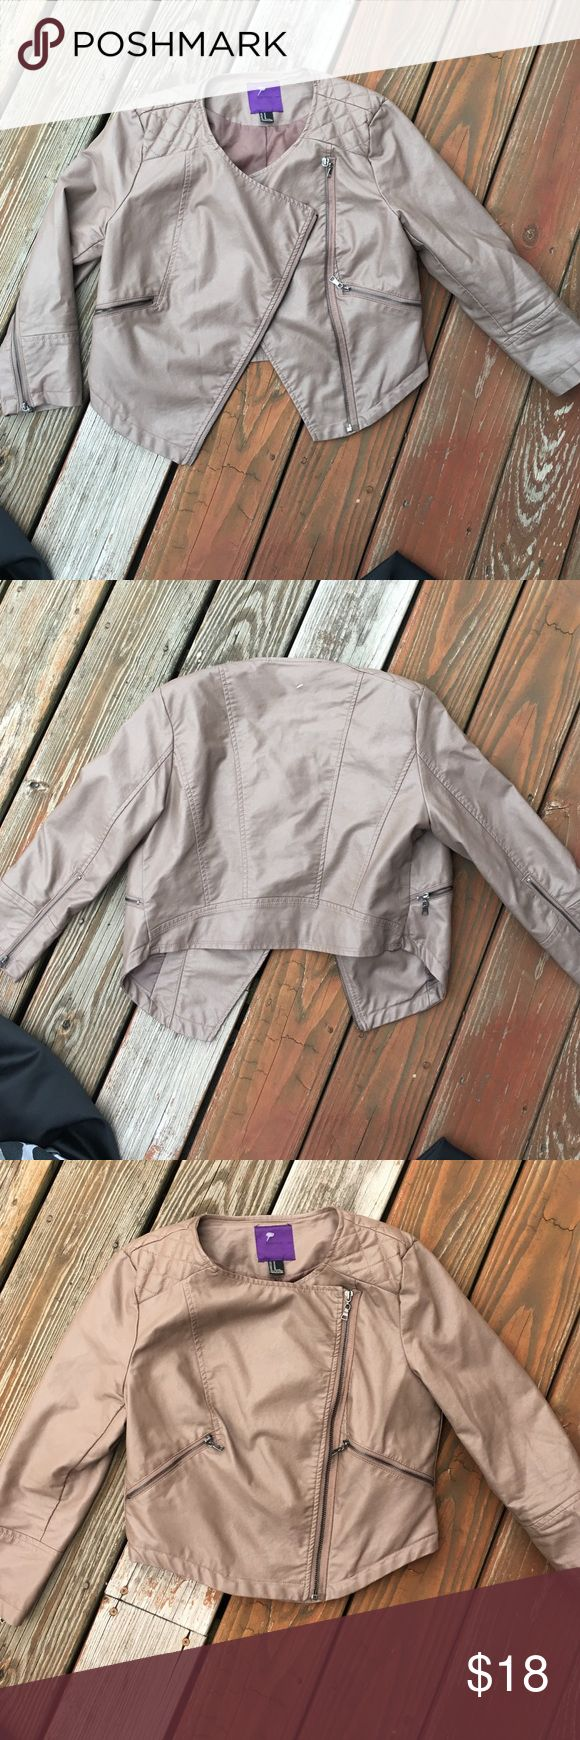 Forever 21 Tan Leather Jacket Size Medium Great condition. Size Medium the color is the first two pictures not third. Forever 21 Jackets & Coats